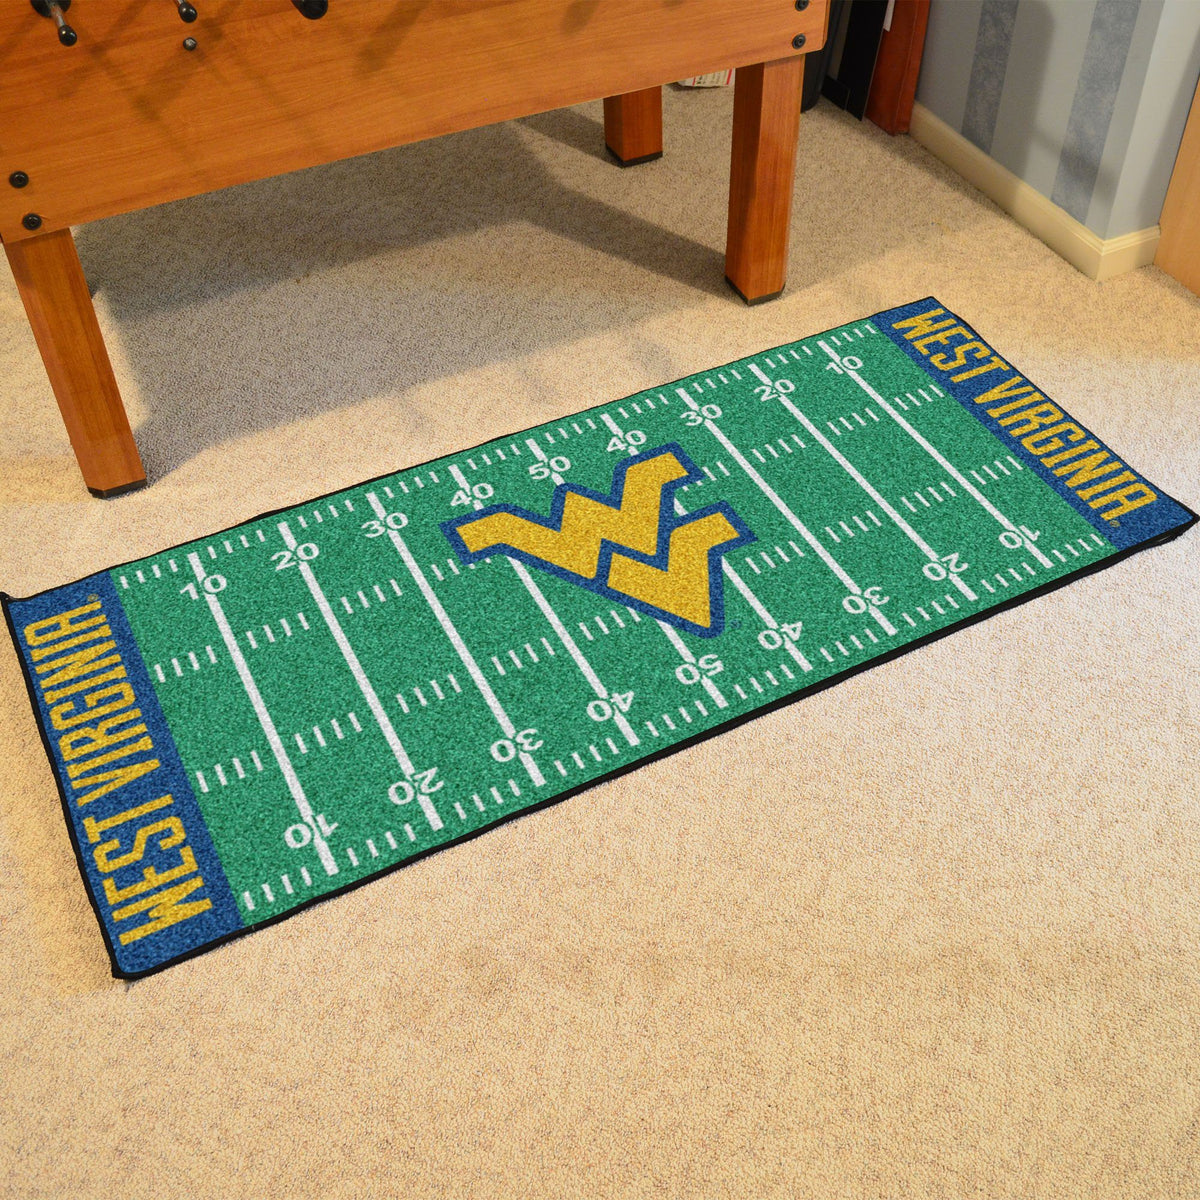 Collegiate - Football Field Runner Collegiate Mats, Rectangular Mats, Football Field Runner, Collegiate, Home Fan Mats West Virginia